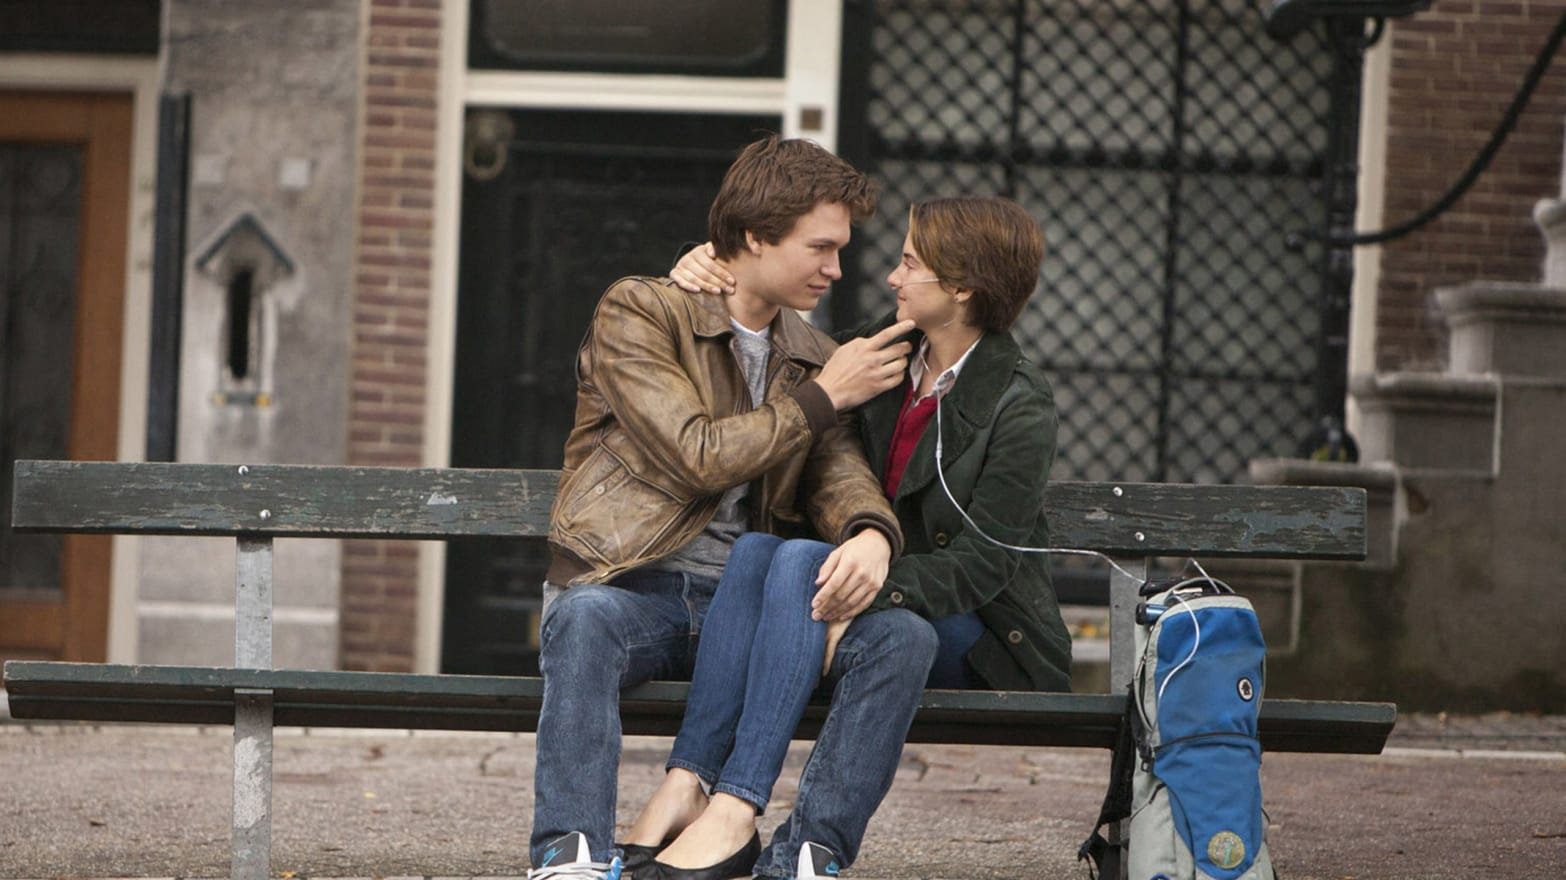 Ranking the Saddest Scenes in 'The Fault in Our Stars'